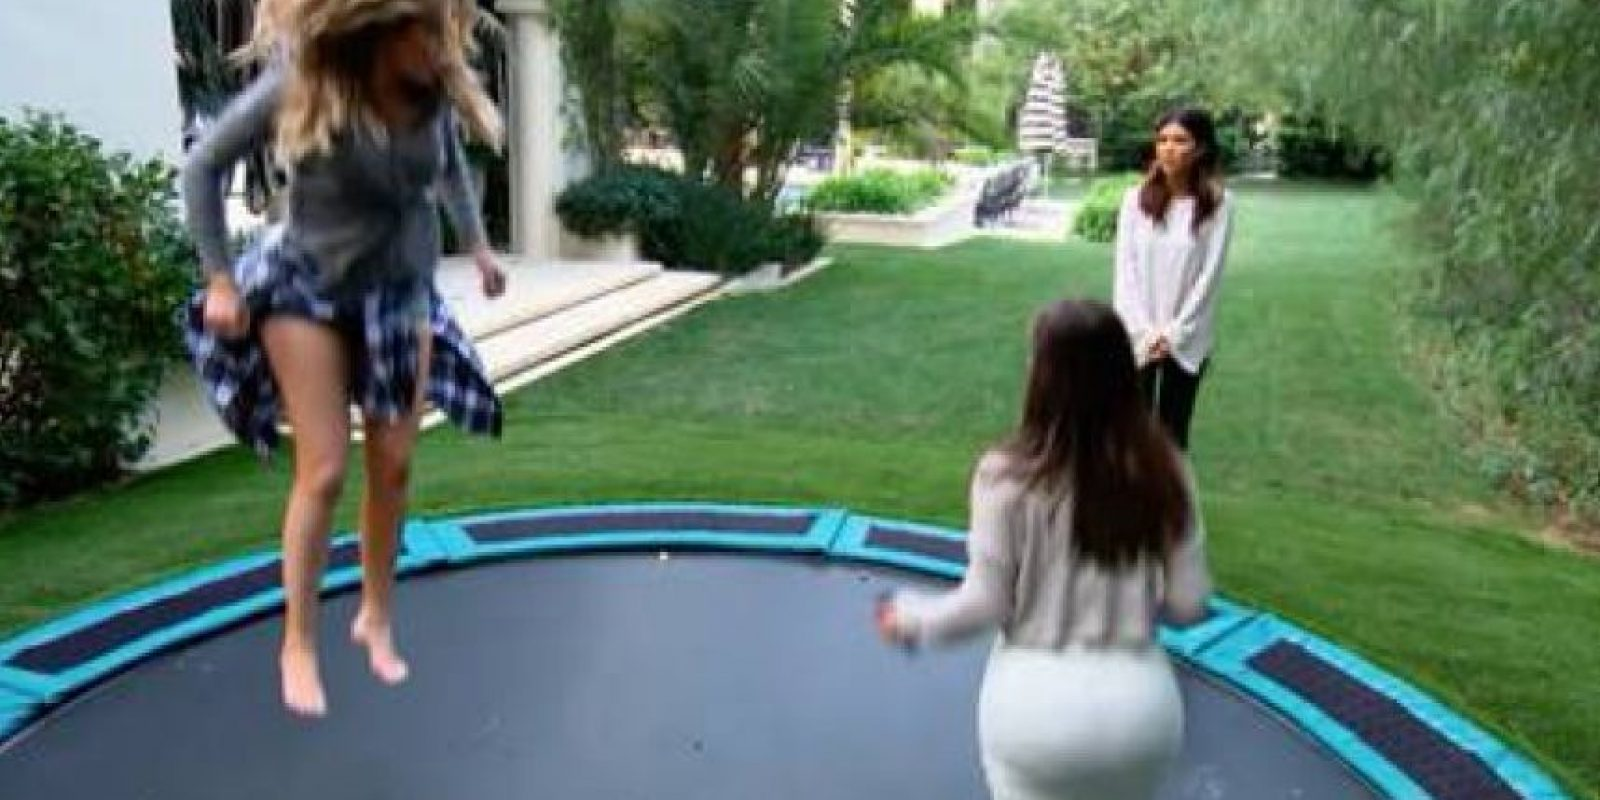 Las hermanas saltando Foto: Facebook/Keeping Up With The Kardashians on E!